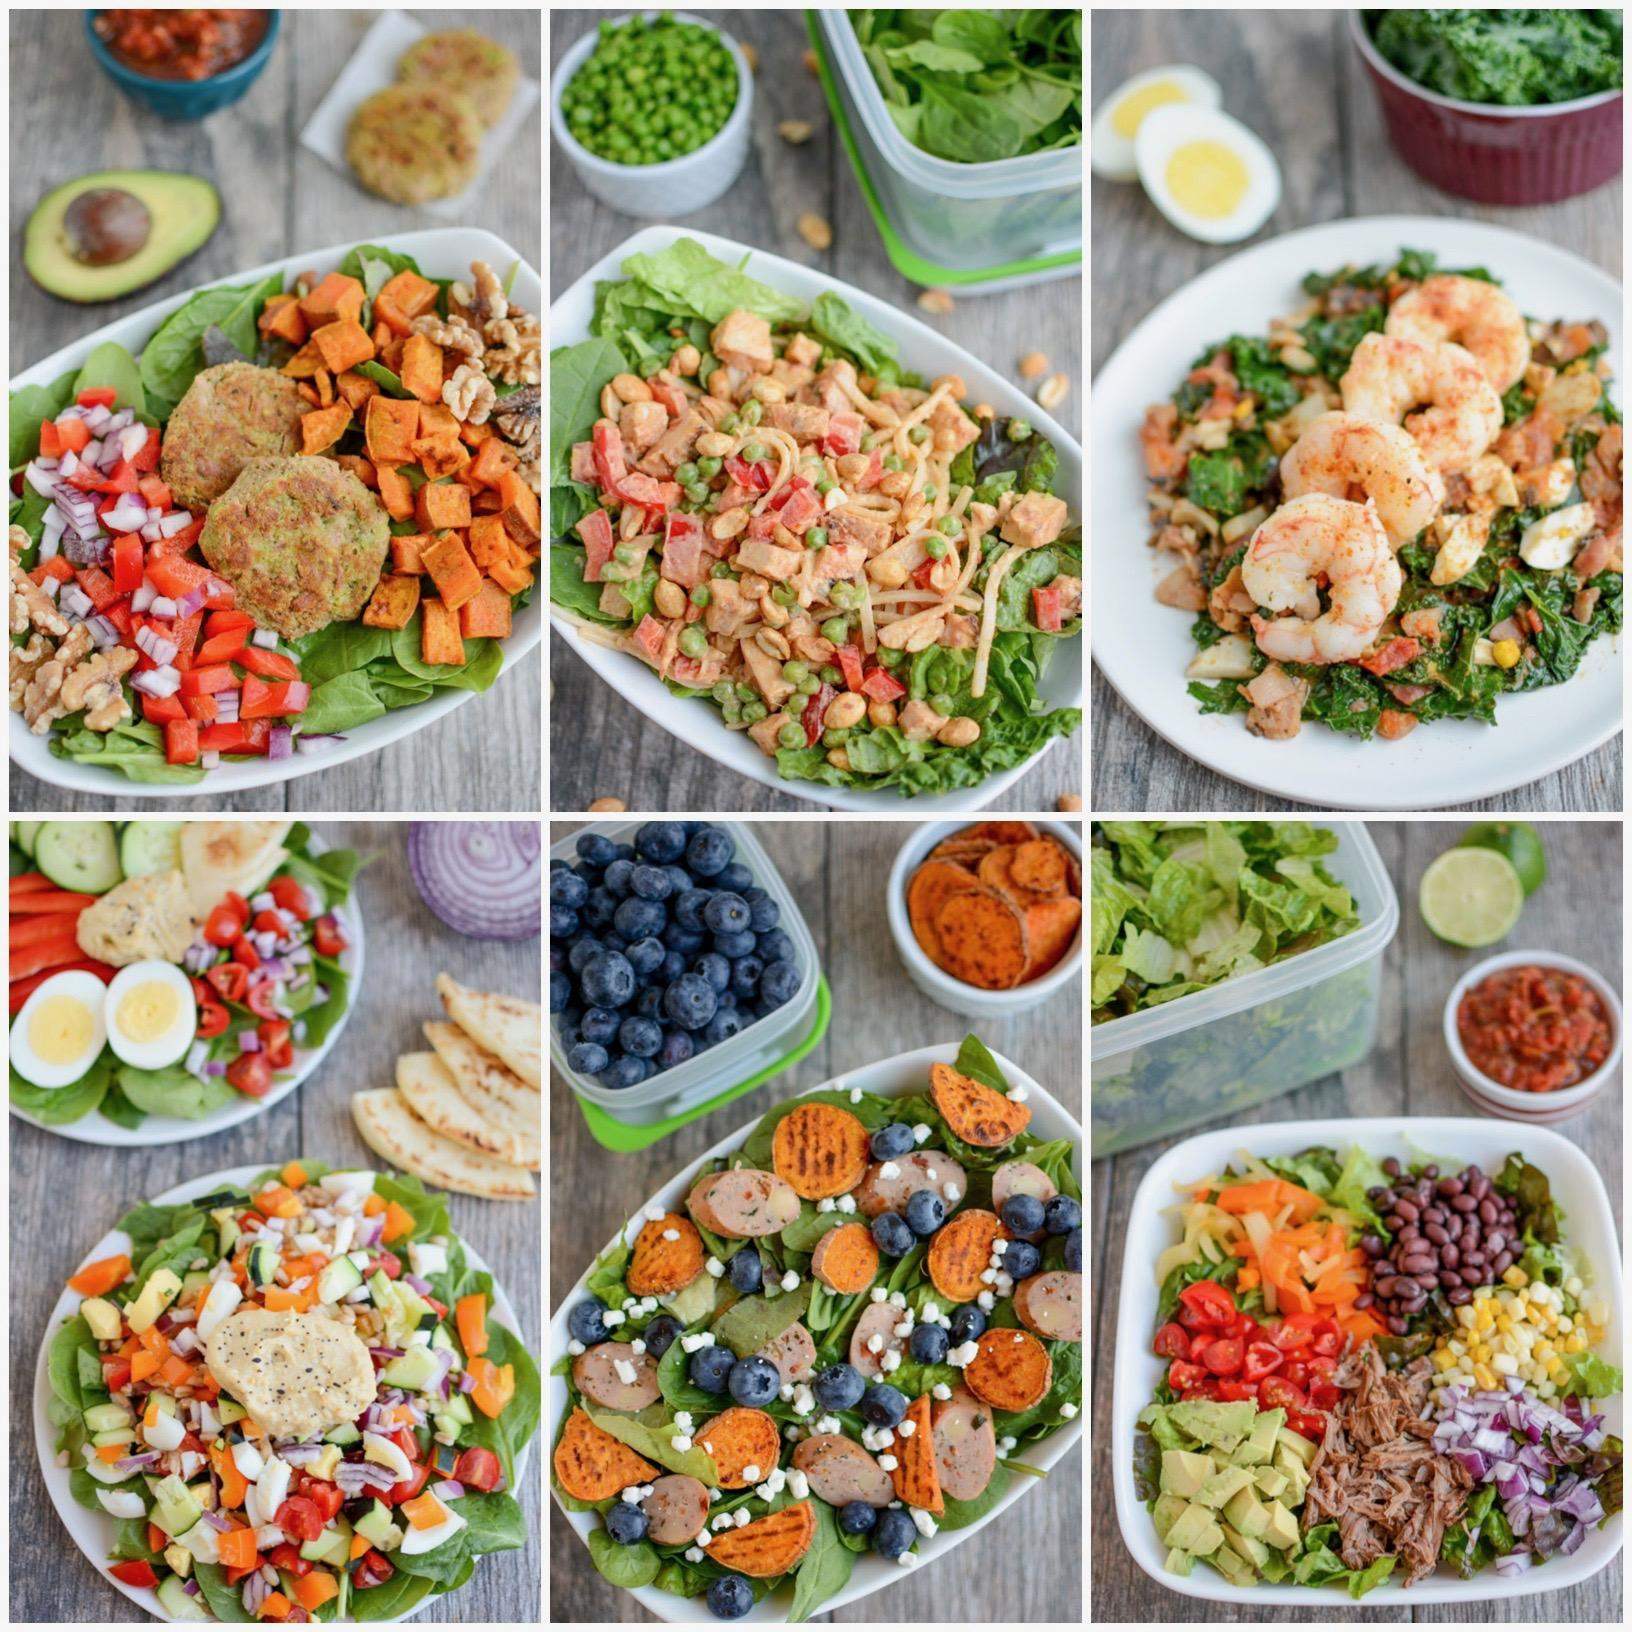 Ultimate List Of Salad Topping Ideas What To Put In Salad